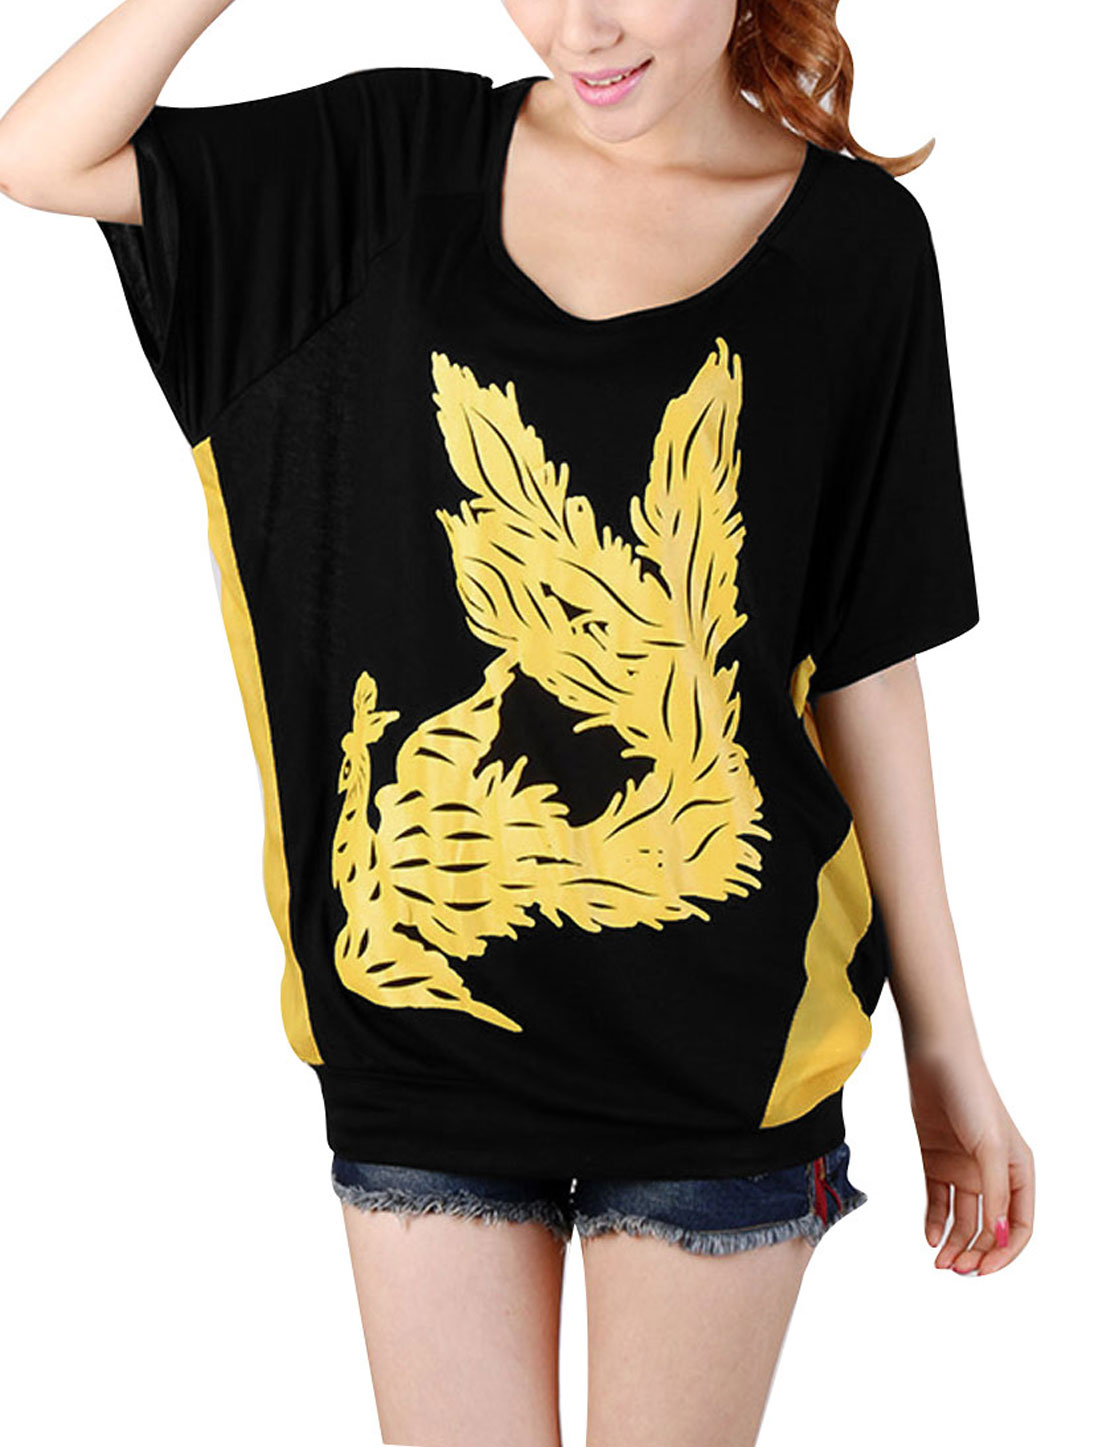 Ladies Scoop Neck Short Dolman Sleeve Black Yellow Phoenix Prints Tops M